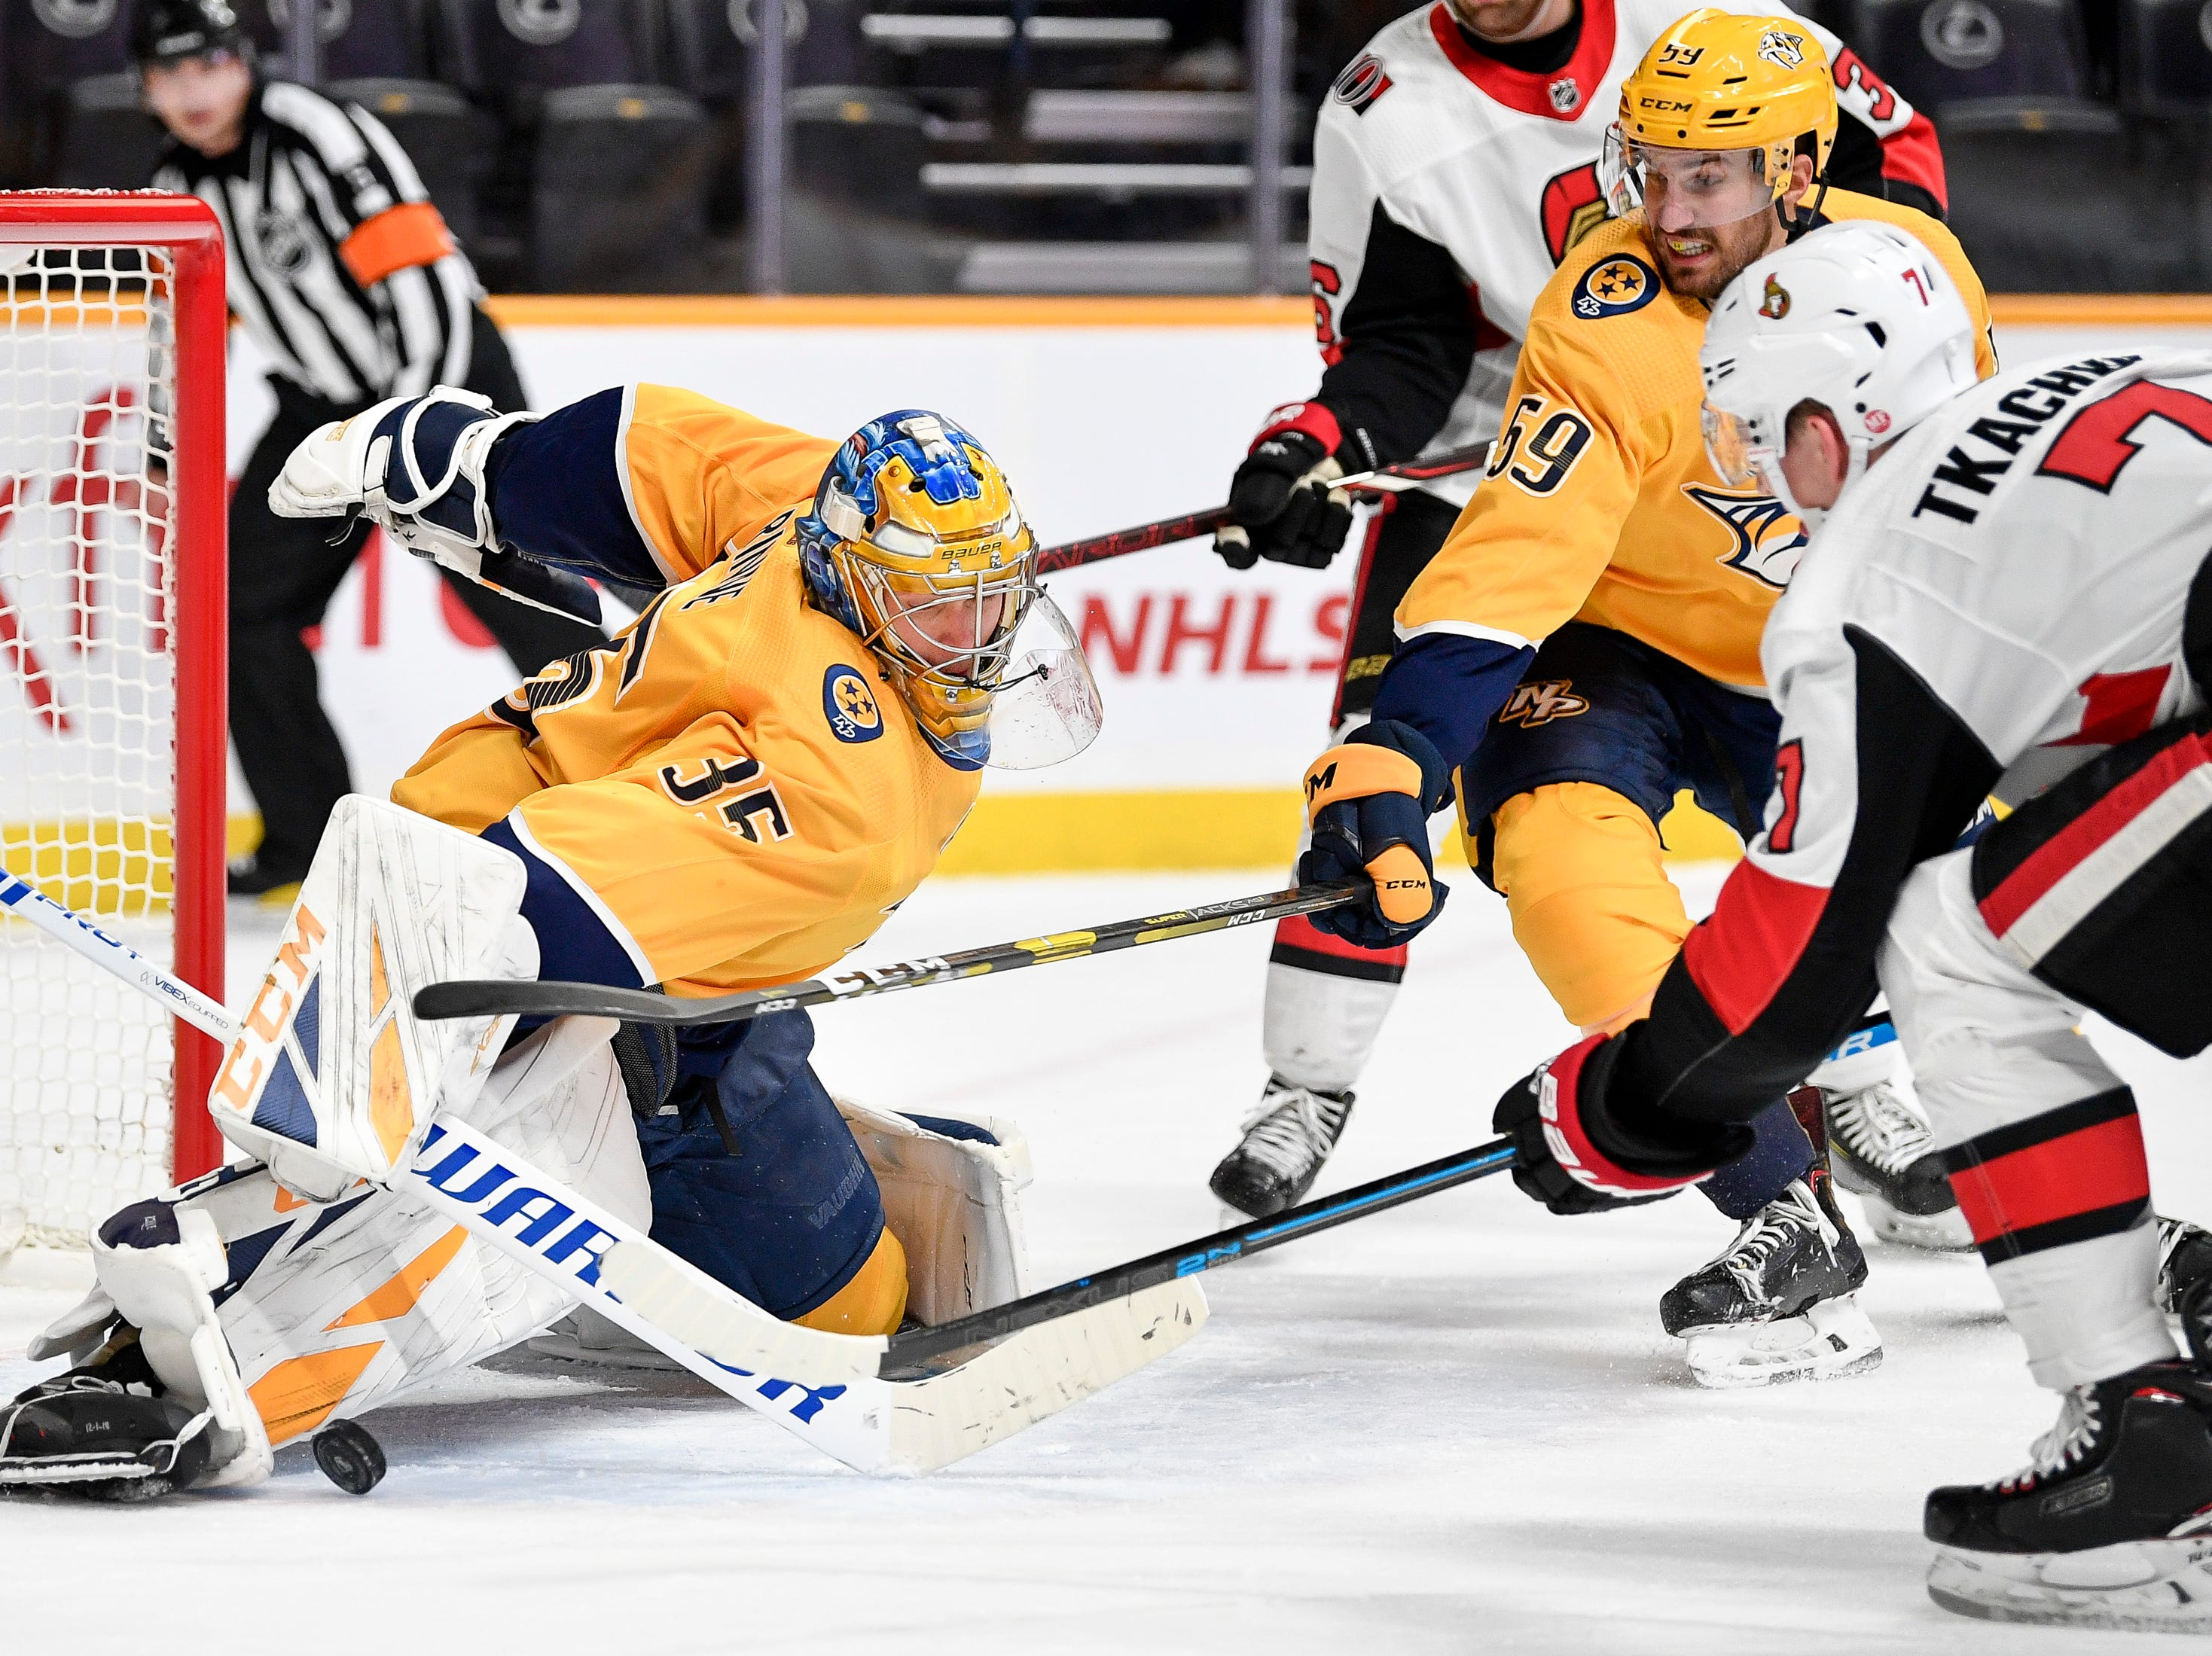 Nashville Predators goaltender Pekka Rinne (35) blocks a shot from Ottawa Senators left wing Brady Tkachuk (7) during the second period at Bridgestone Arena in Nashville, Tenn., Tuesday, Dec. 11, 2018.